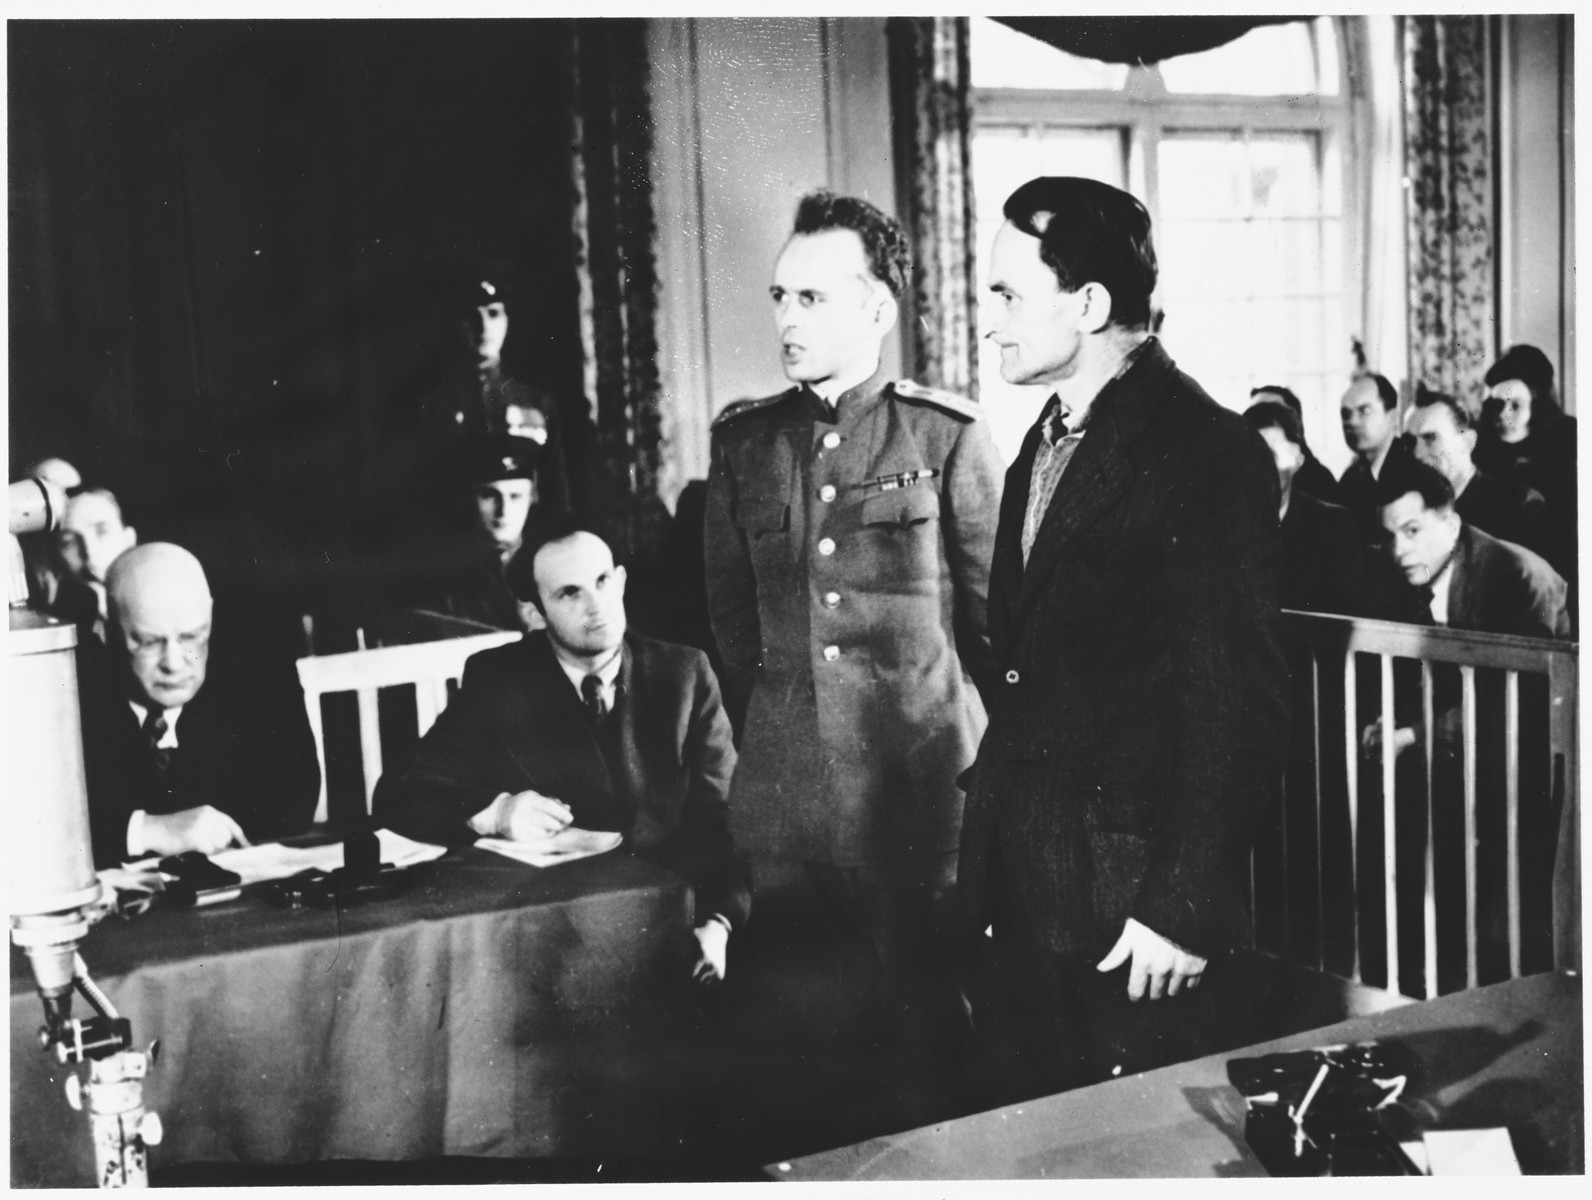 A witness is introduced at the Sachsenhausen concentration camp war crimes trial in Berlin.  Among those pictured it Ewald Becker (dark suit, to the right of the Russian officer).